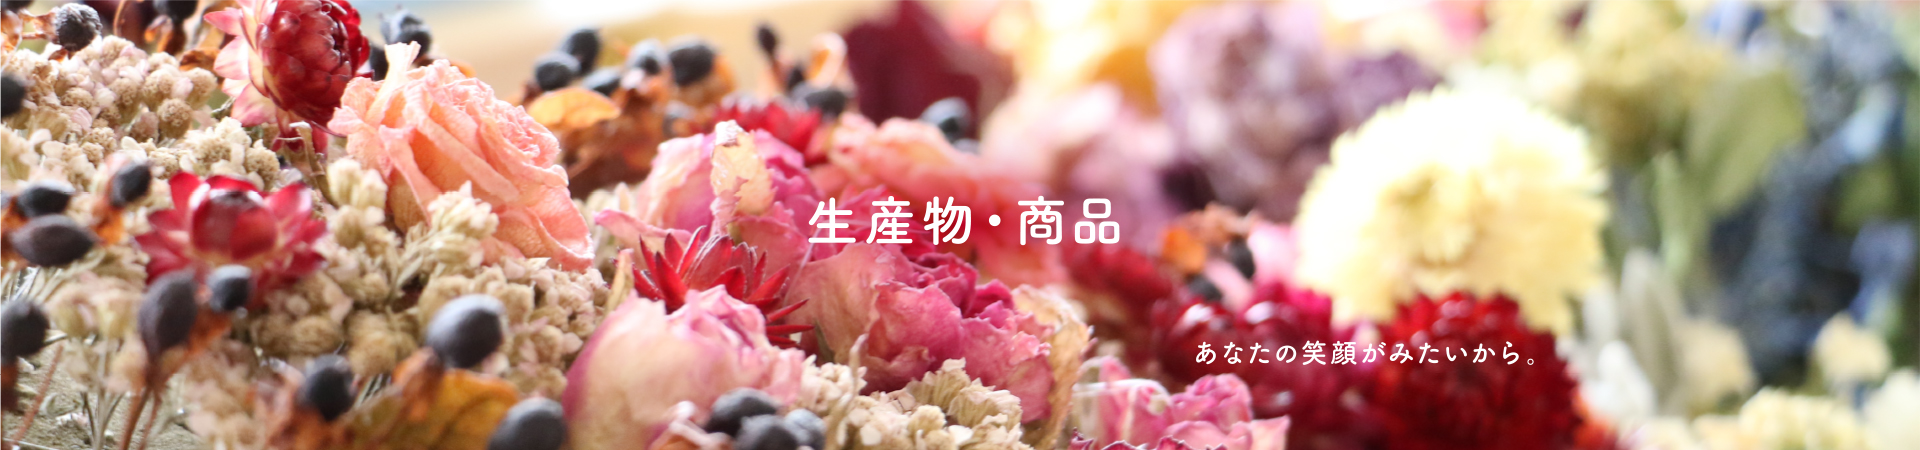 in_products_mv1